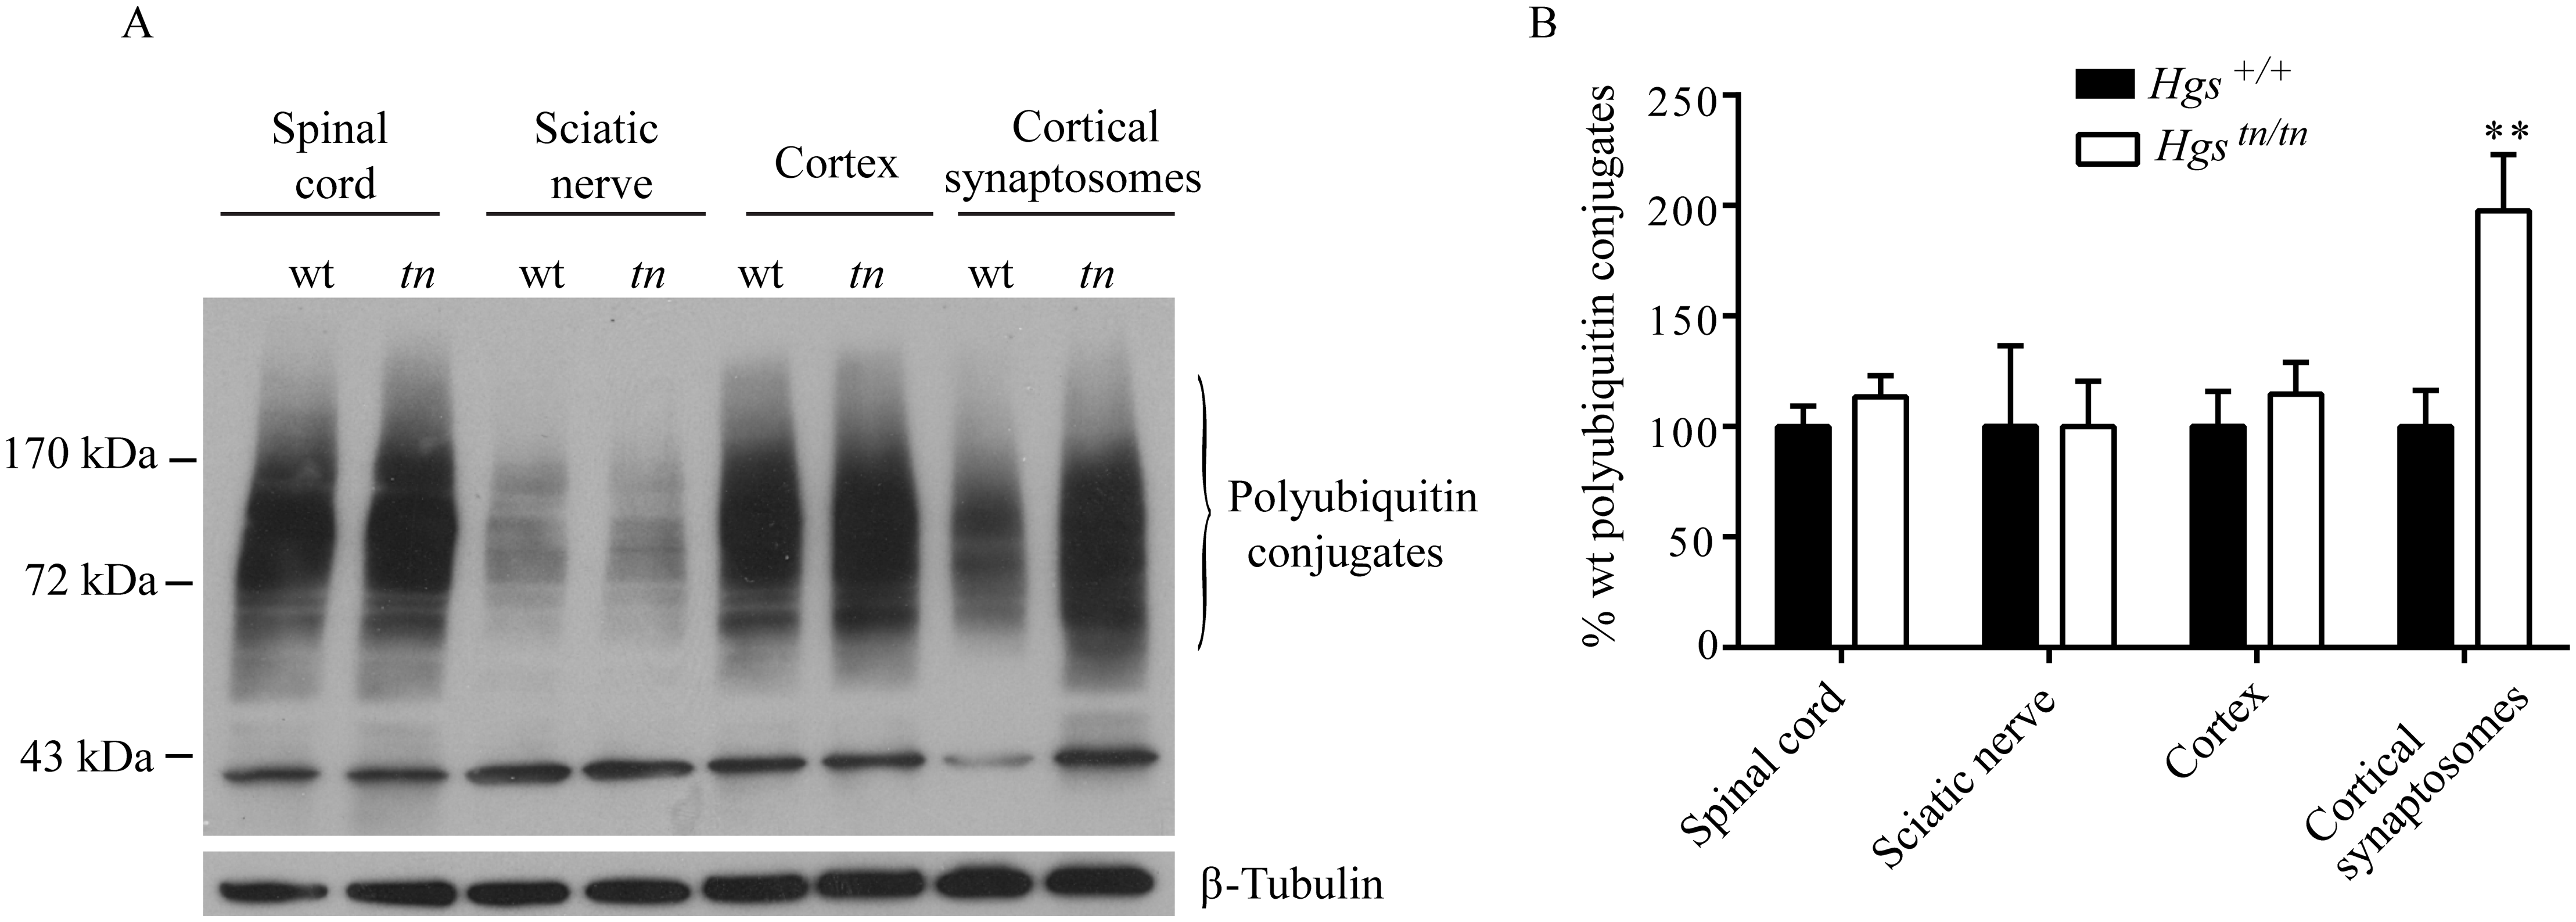 Effect of reduced HGS expression on ubiquitin conjugates in the nervous system of <i>Hgs</i><sup><i>tn/tn</i></sup> mice.